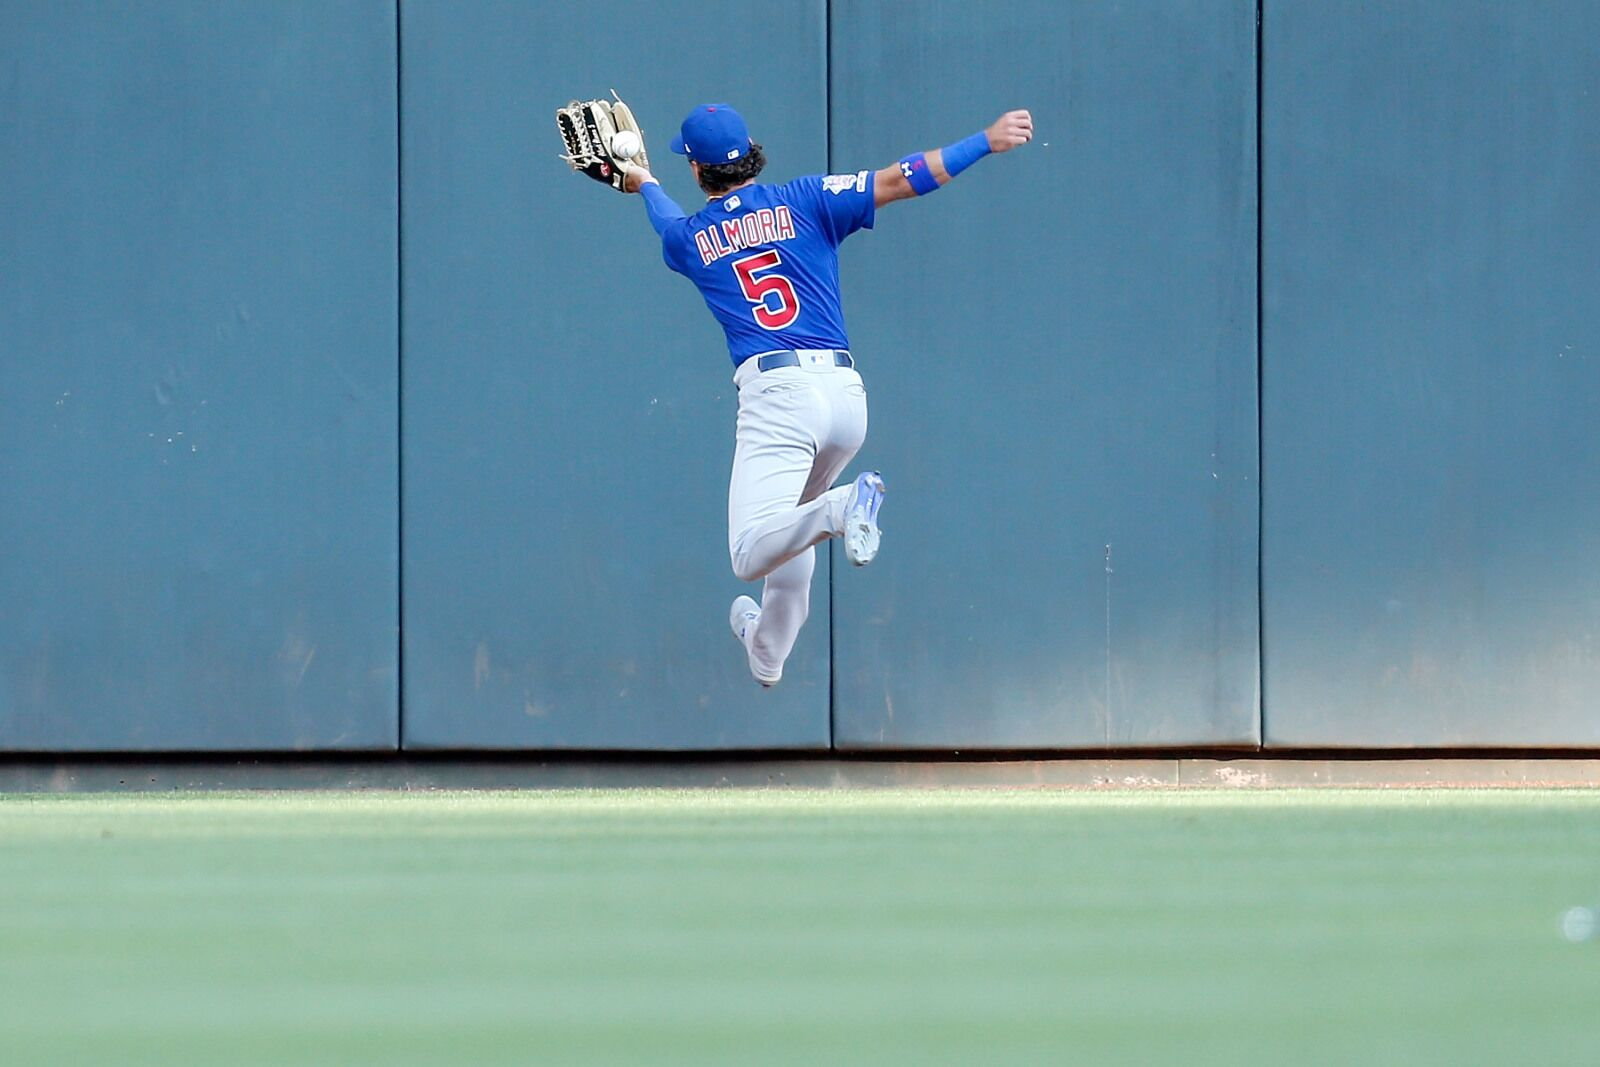 Cubs: Team needs to have short leash on Albert Almora